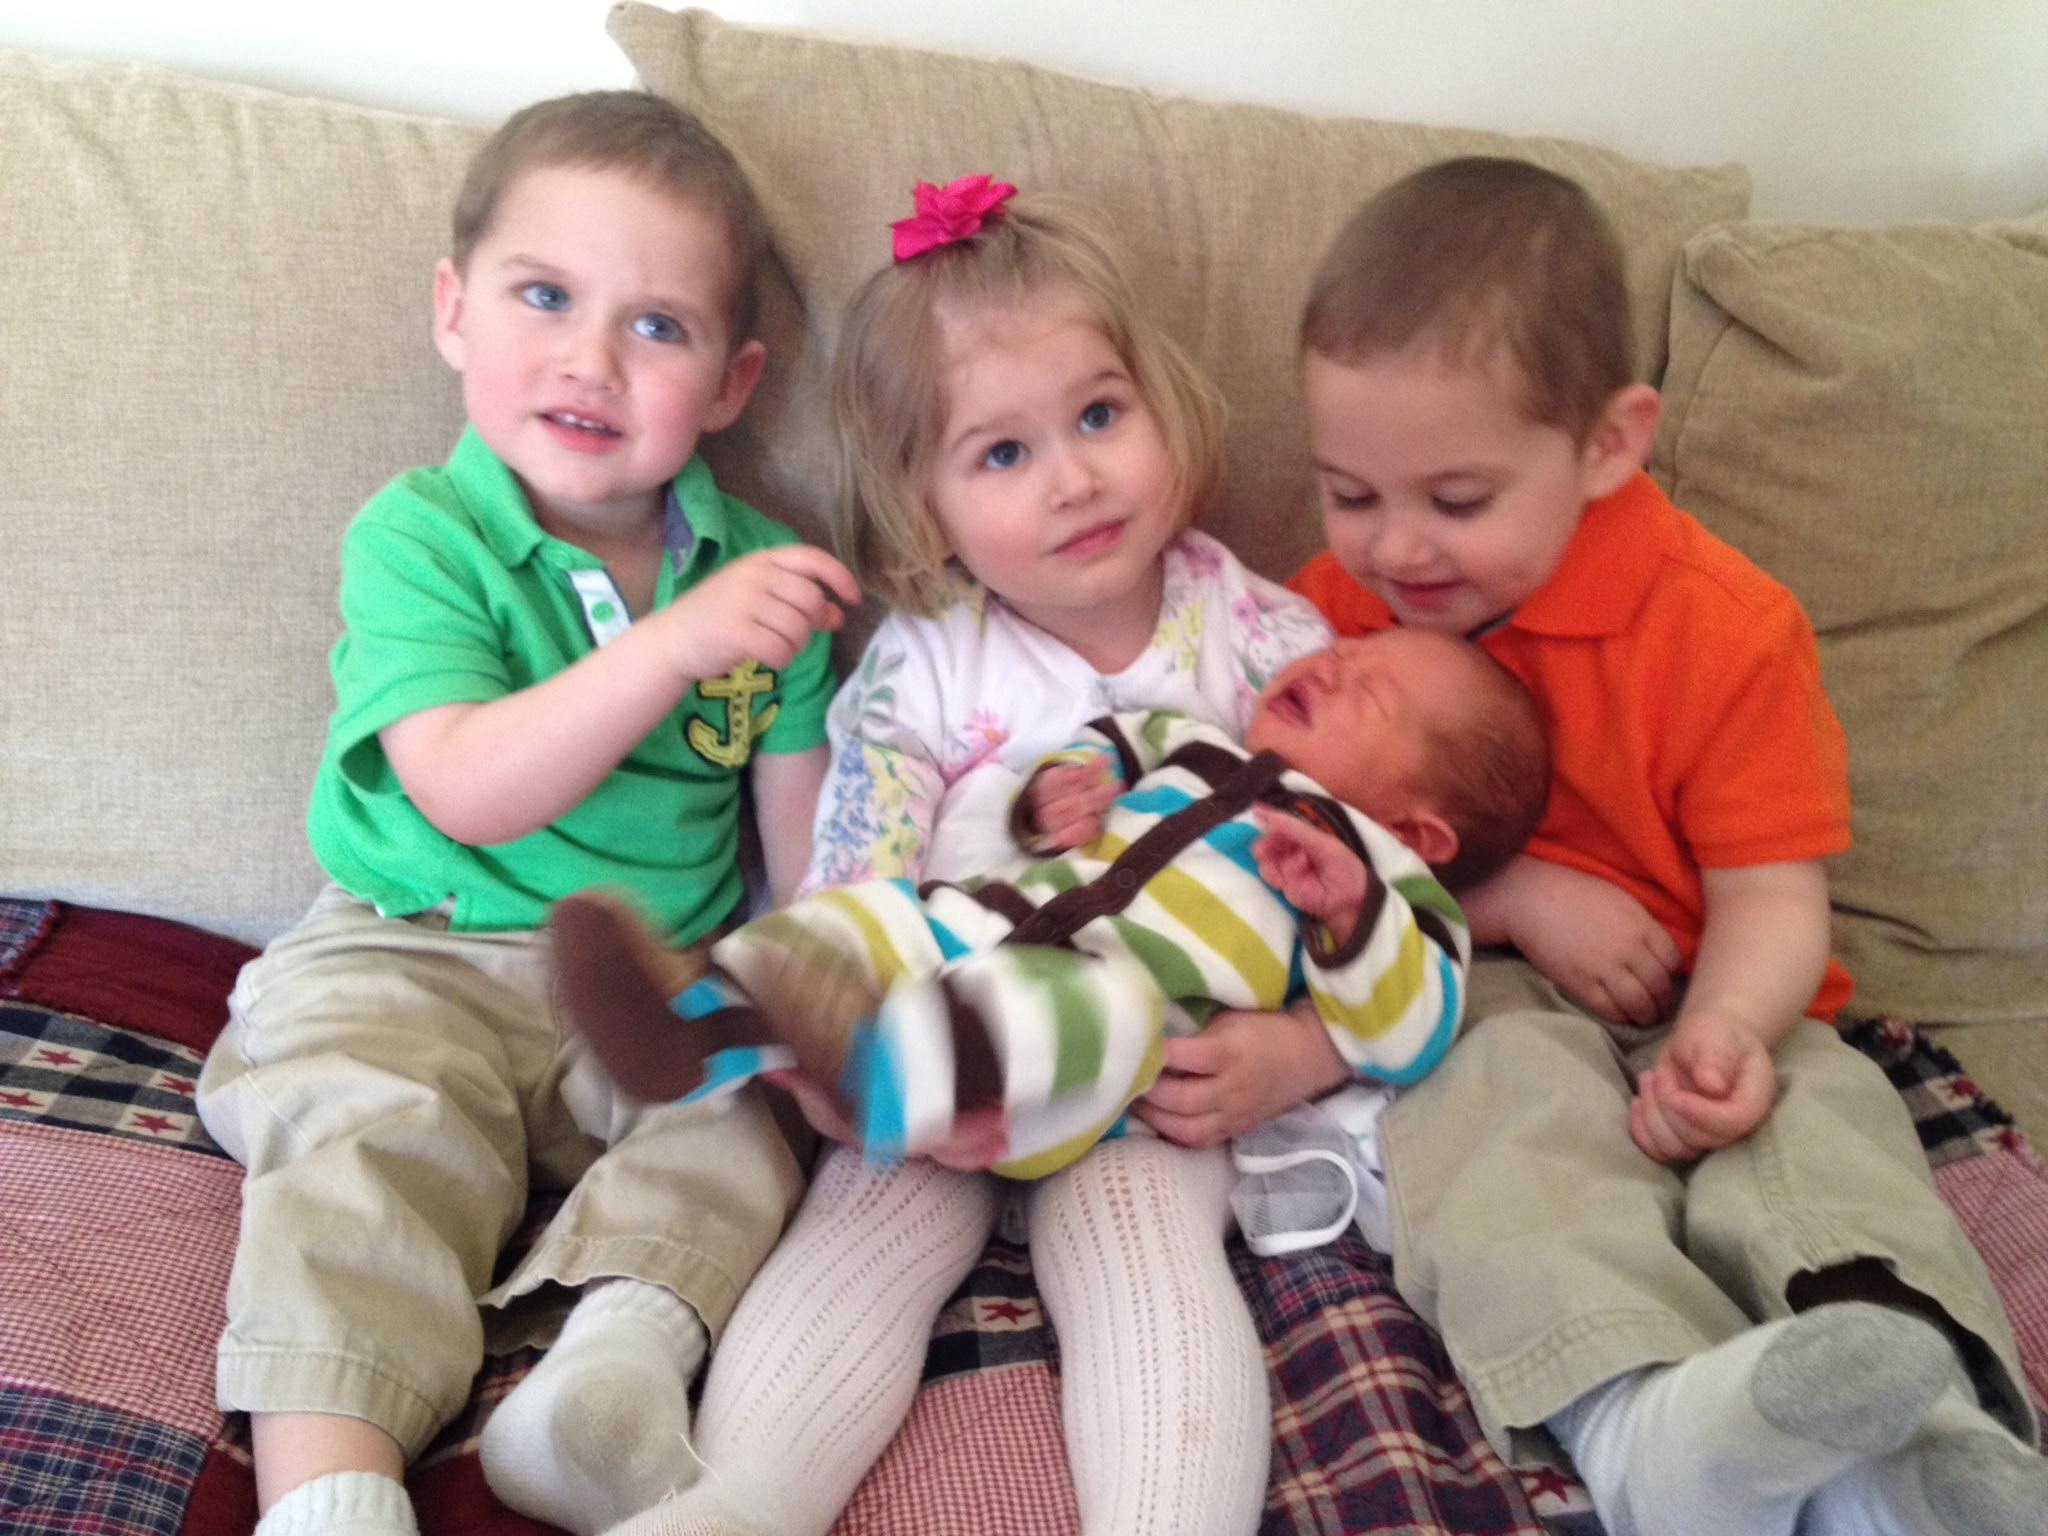 three children sitting on a couch holding a new baby